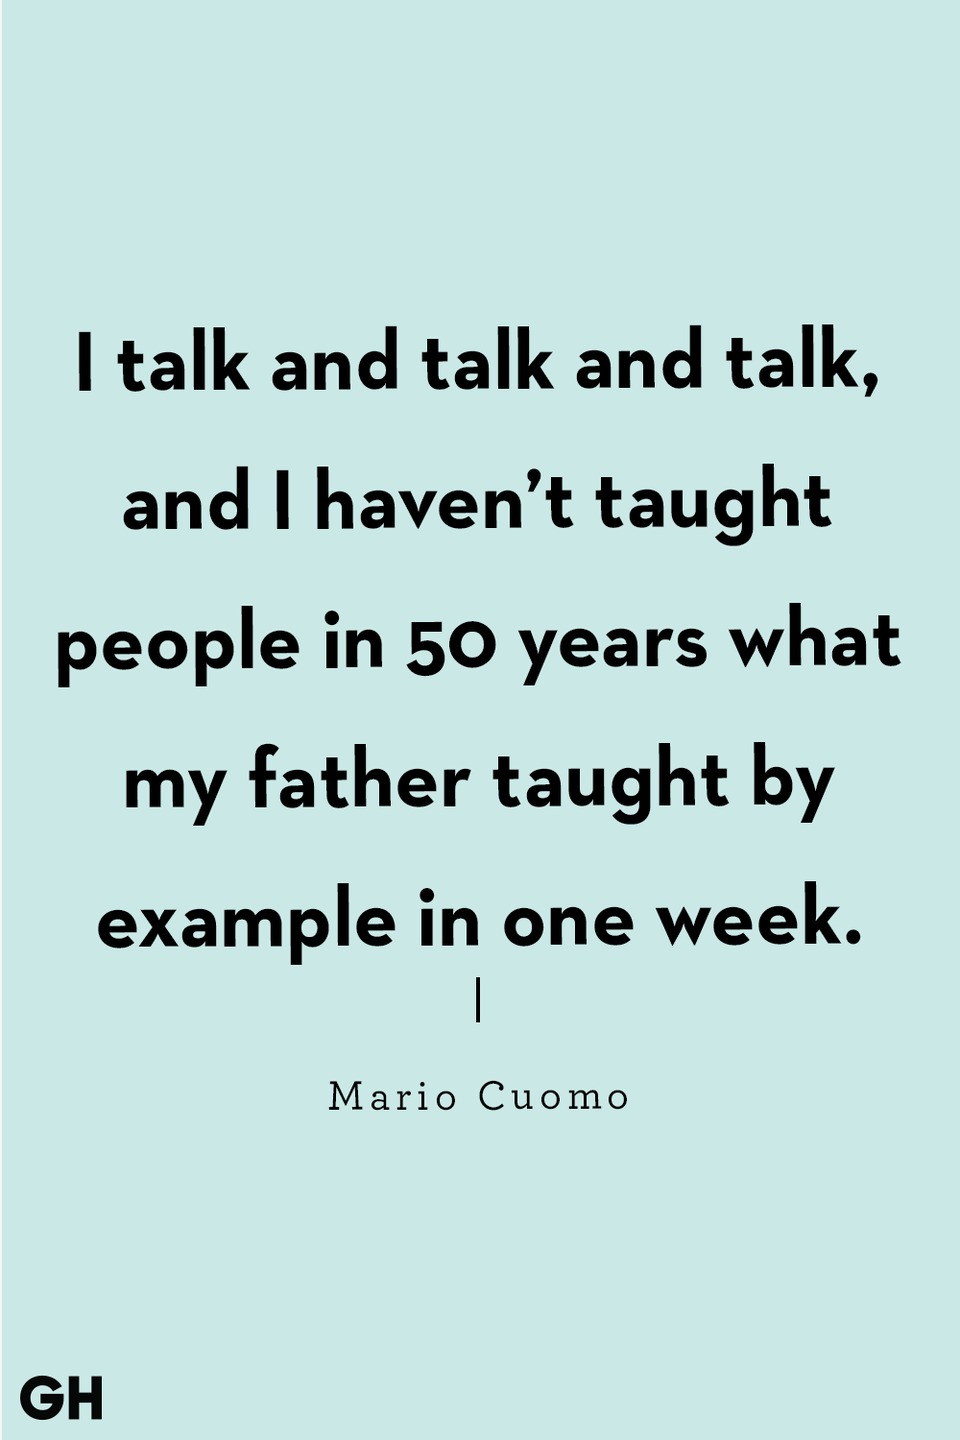 <p>I talk and talk and talk, and I haven't taught people in 50 years what my father taught by example in one week.</p>